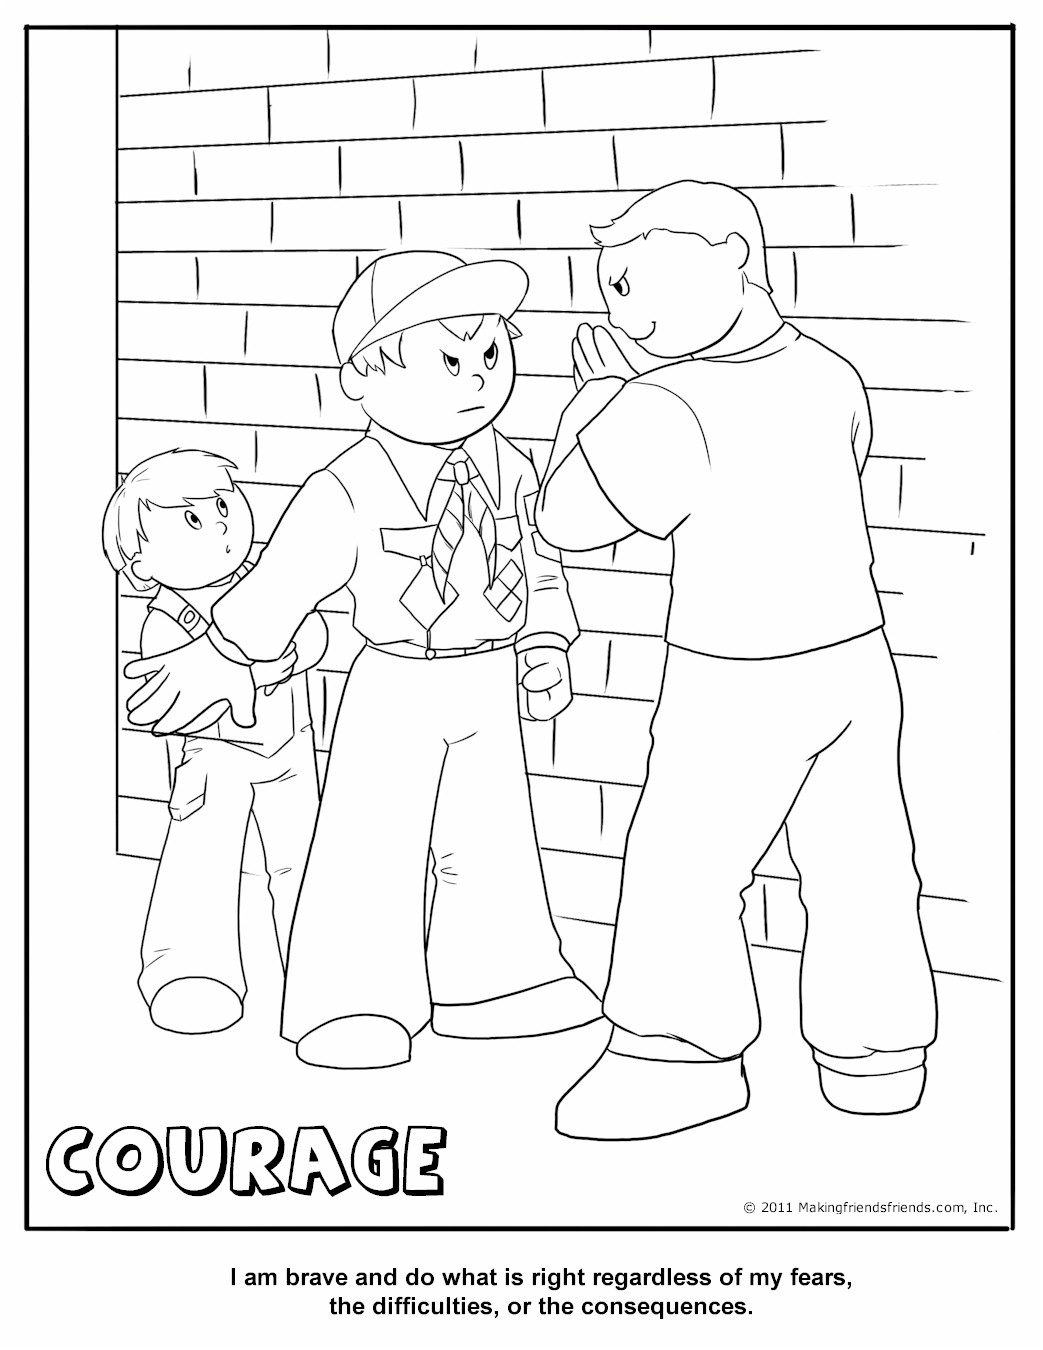 scouting coloring pages - photo#30